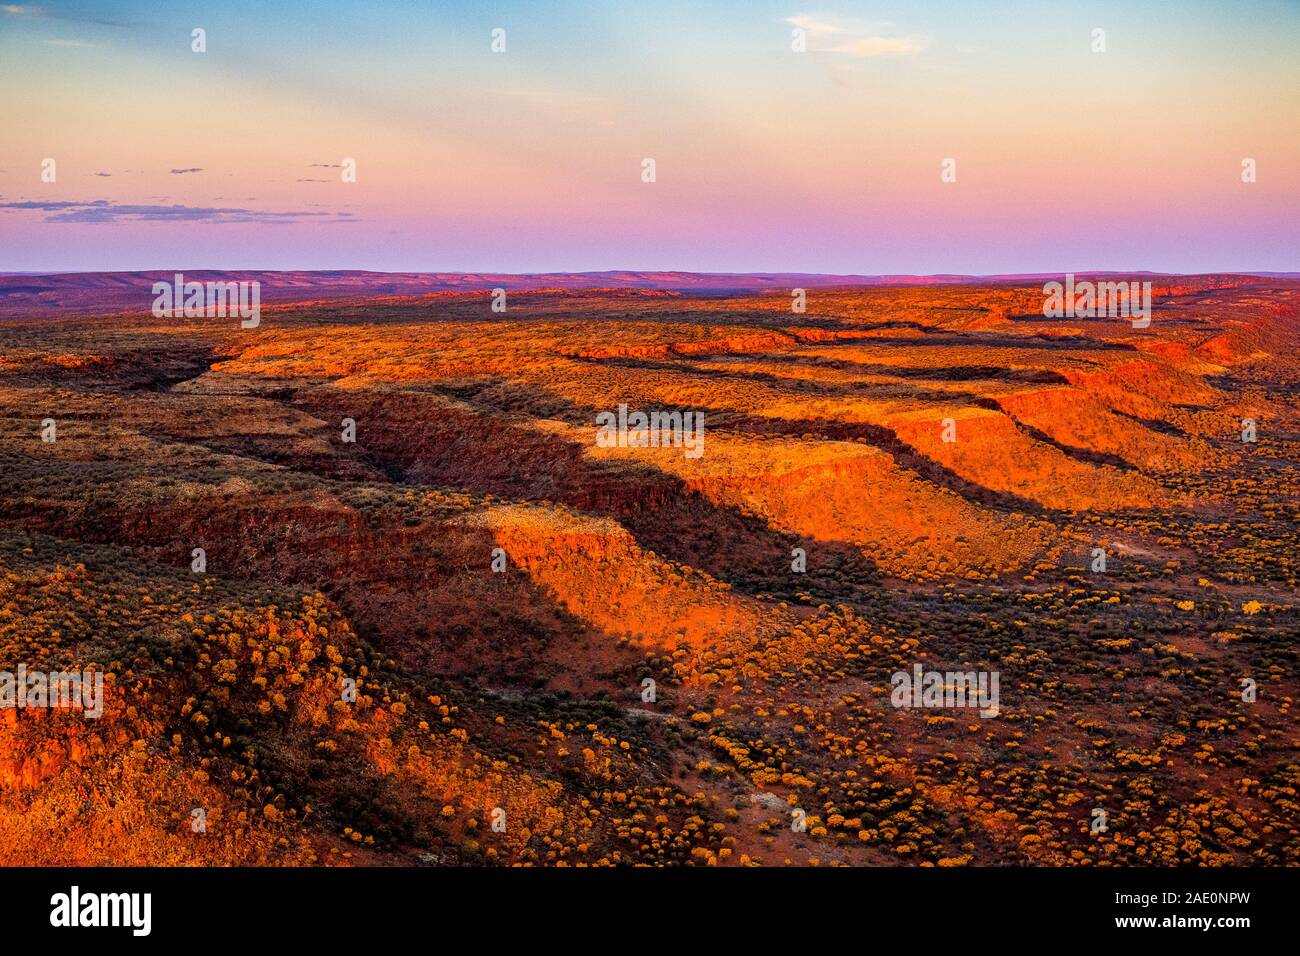 Stunning aerial views of the George Gill Range at sunset. Located in remote central Australia. Stock Photo